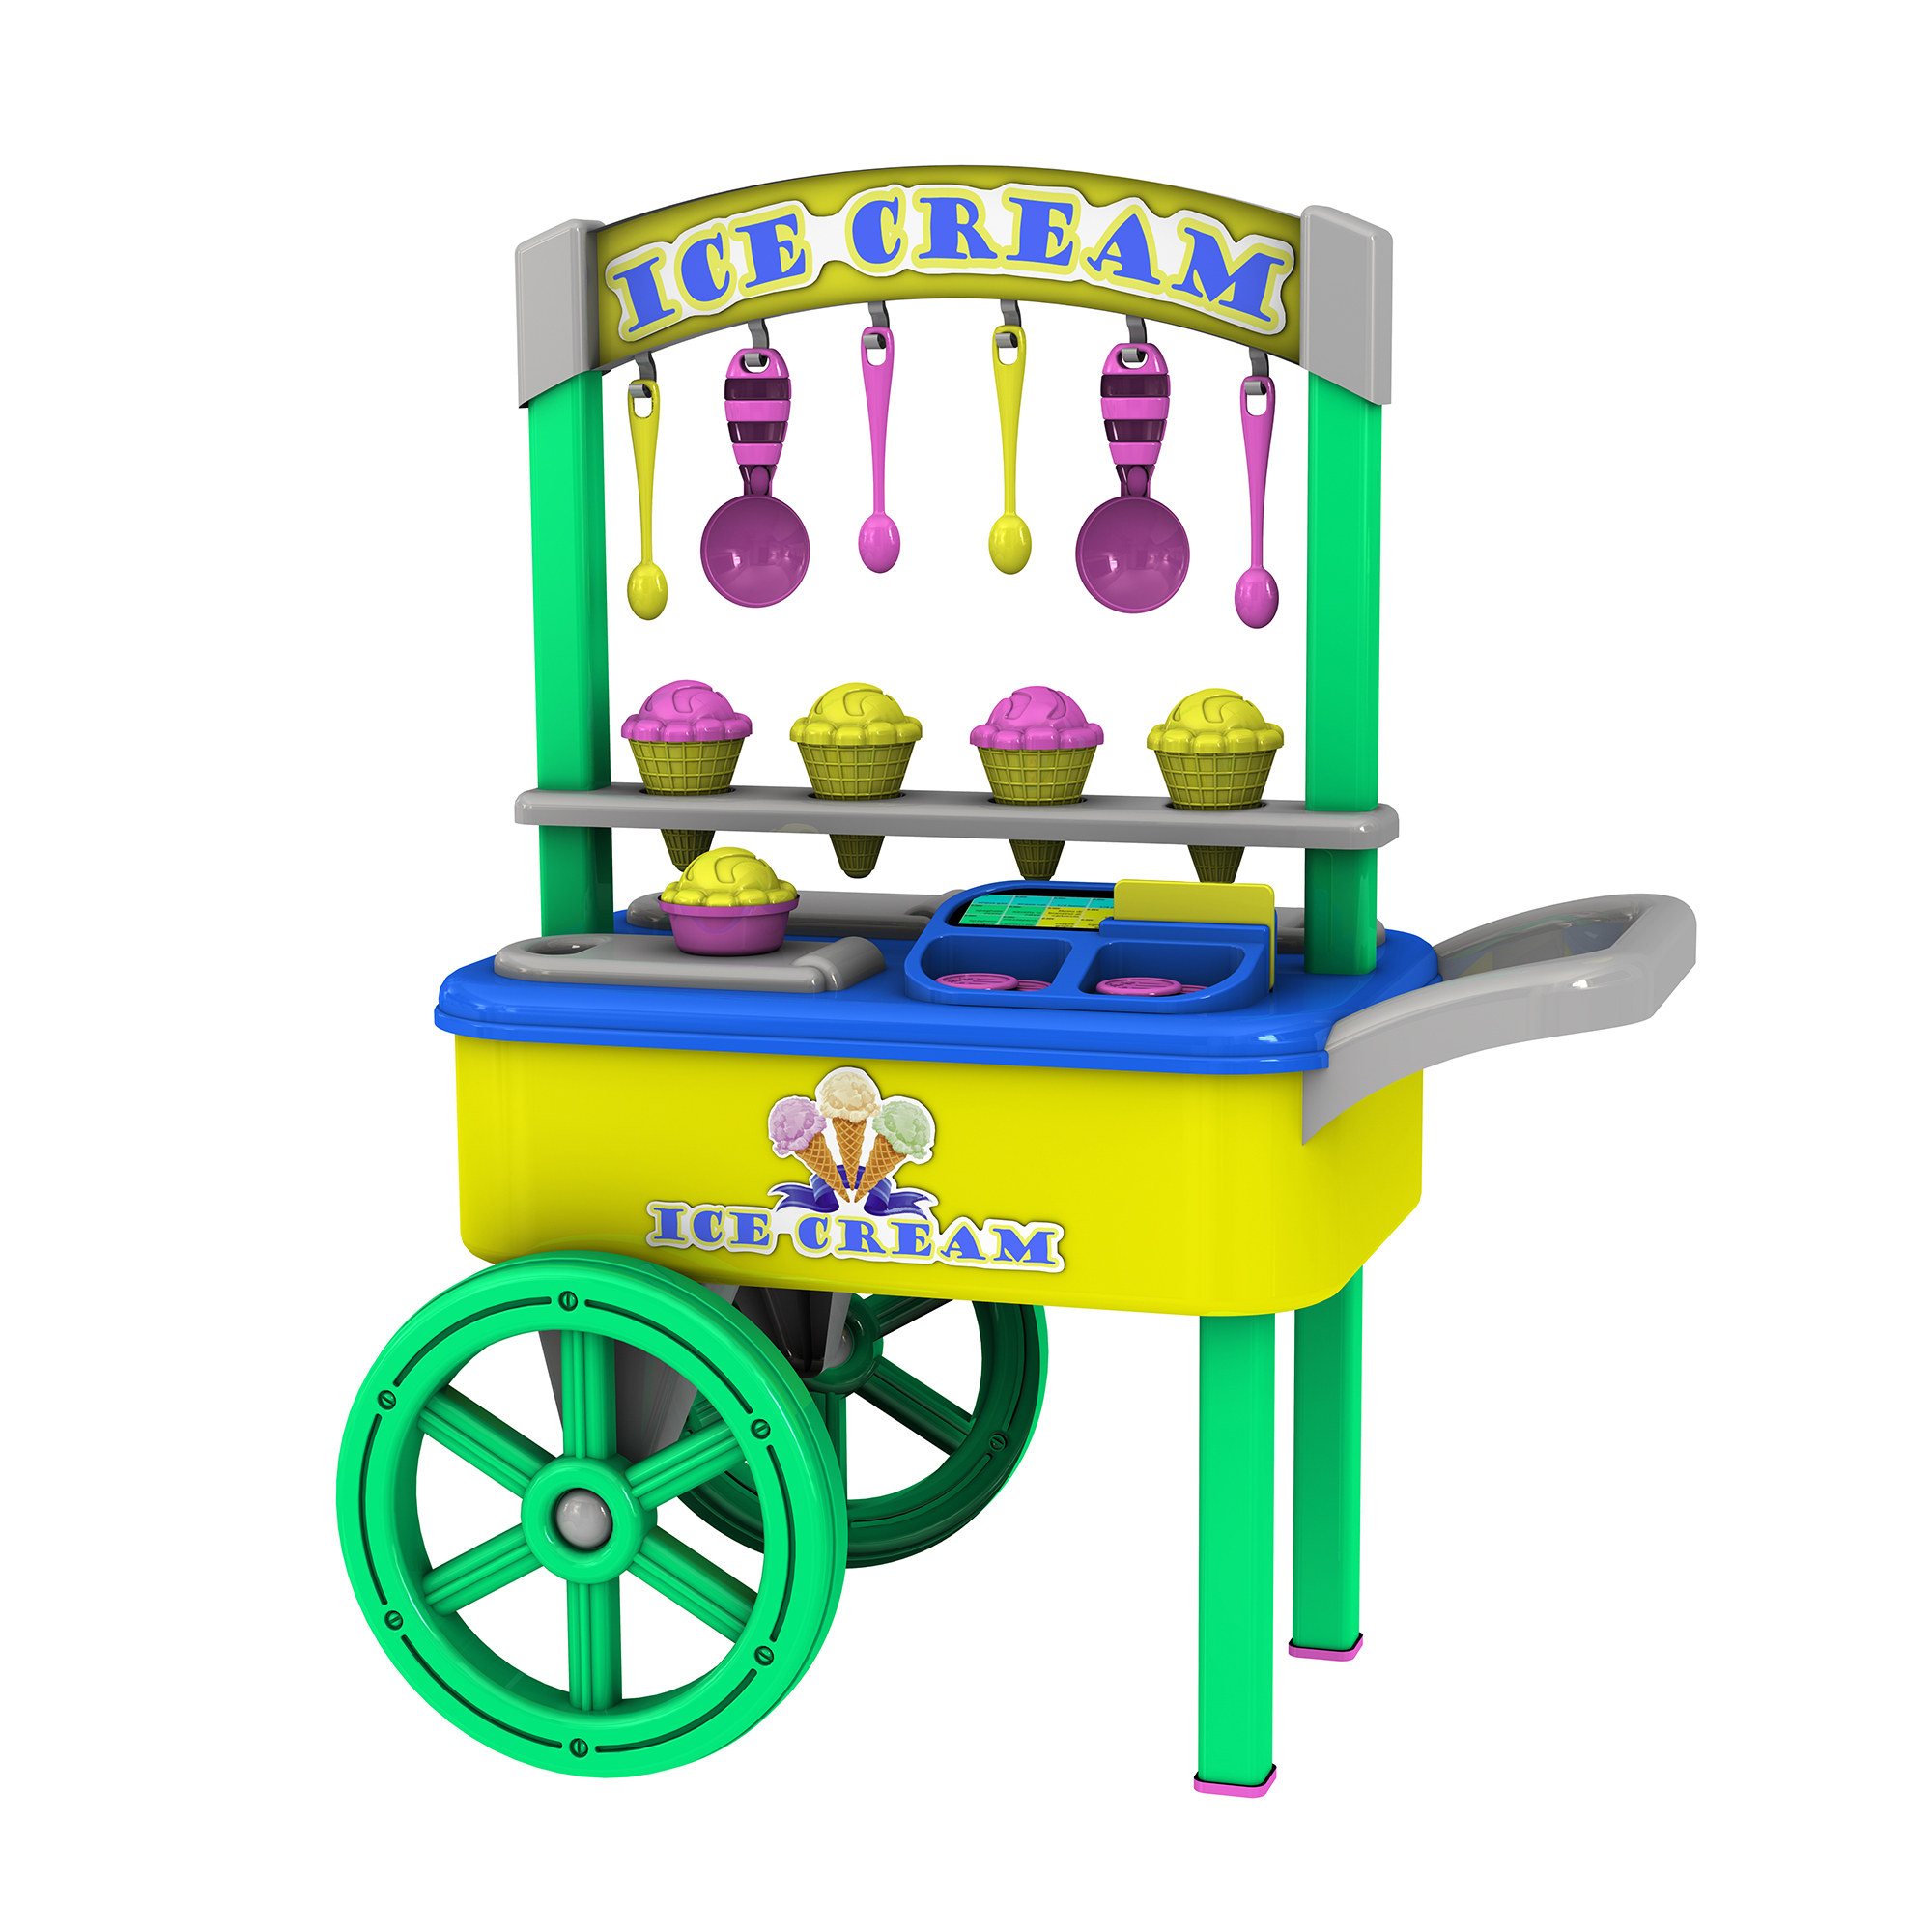 American Plastic Toys My Very Own Ice Cream Cart $17.49 (Reg $34.99)